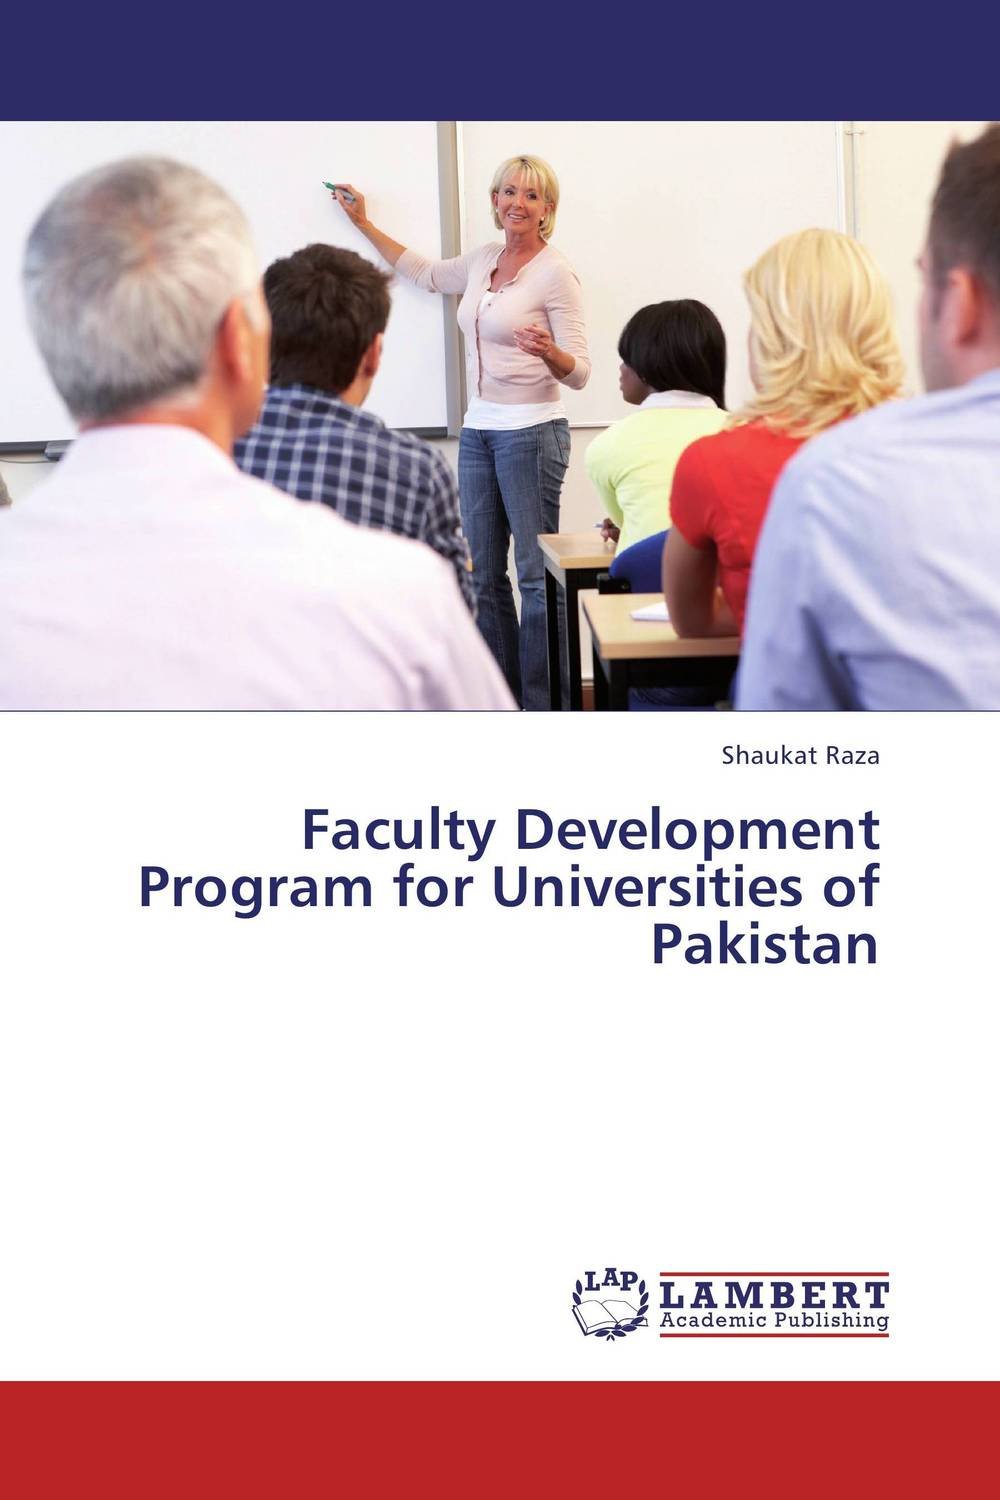 Faculty Development Program for Universities of Pakistan elaine biech training and development for dummies